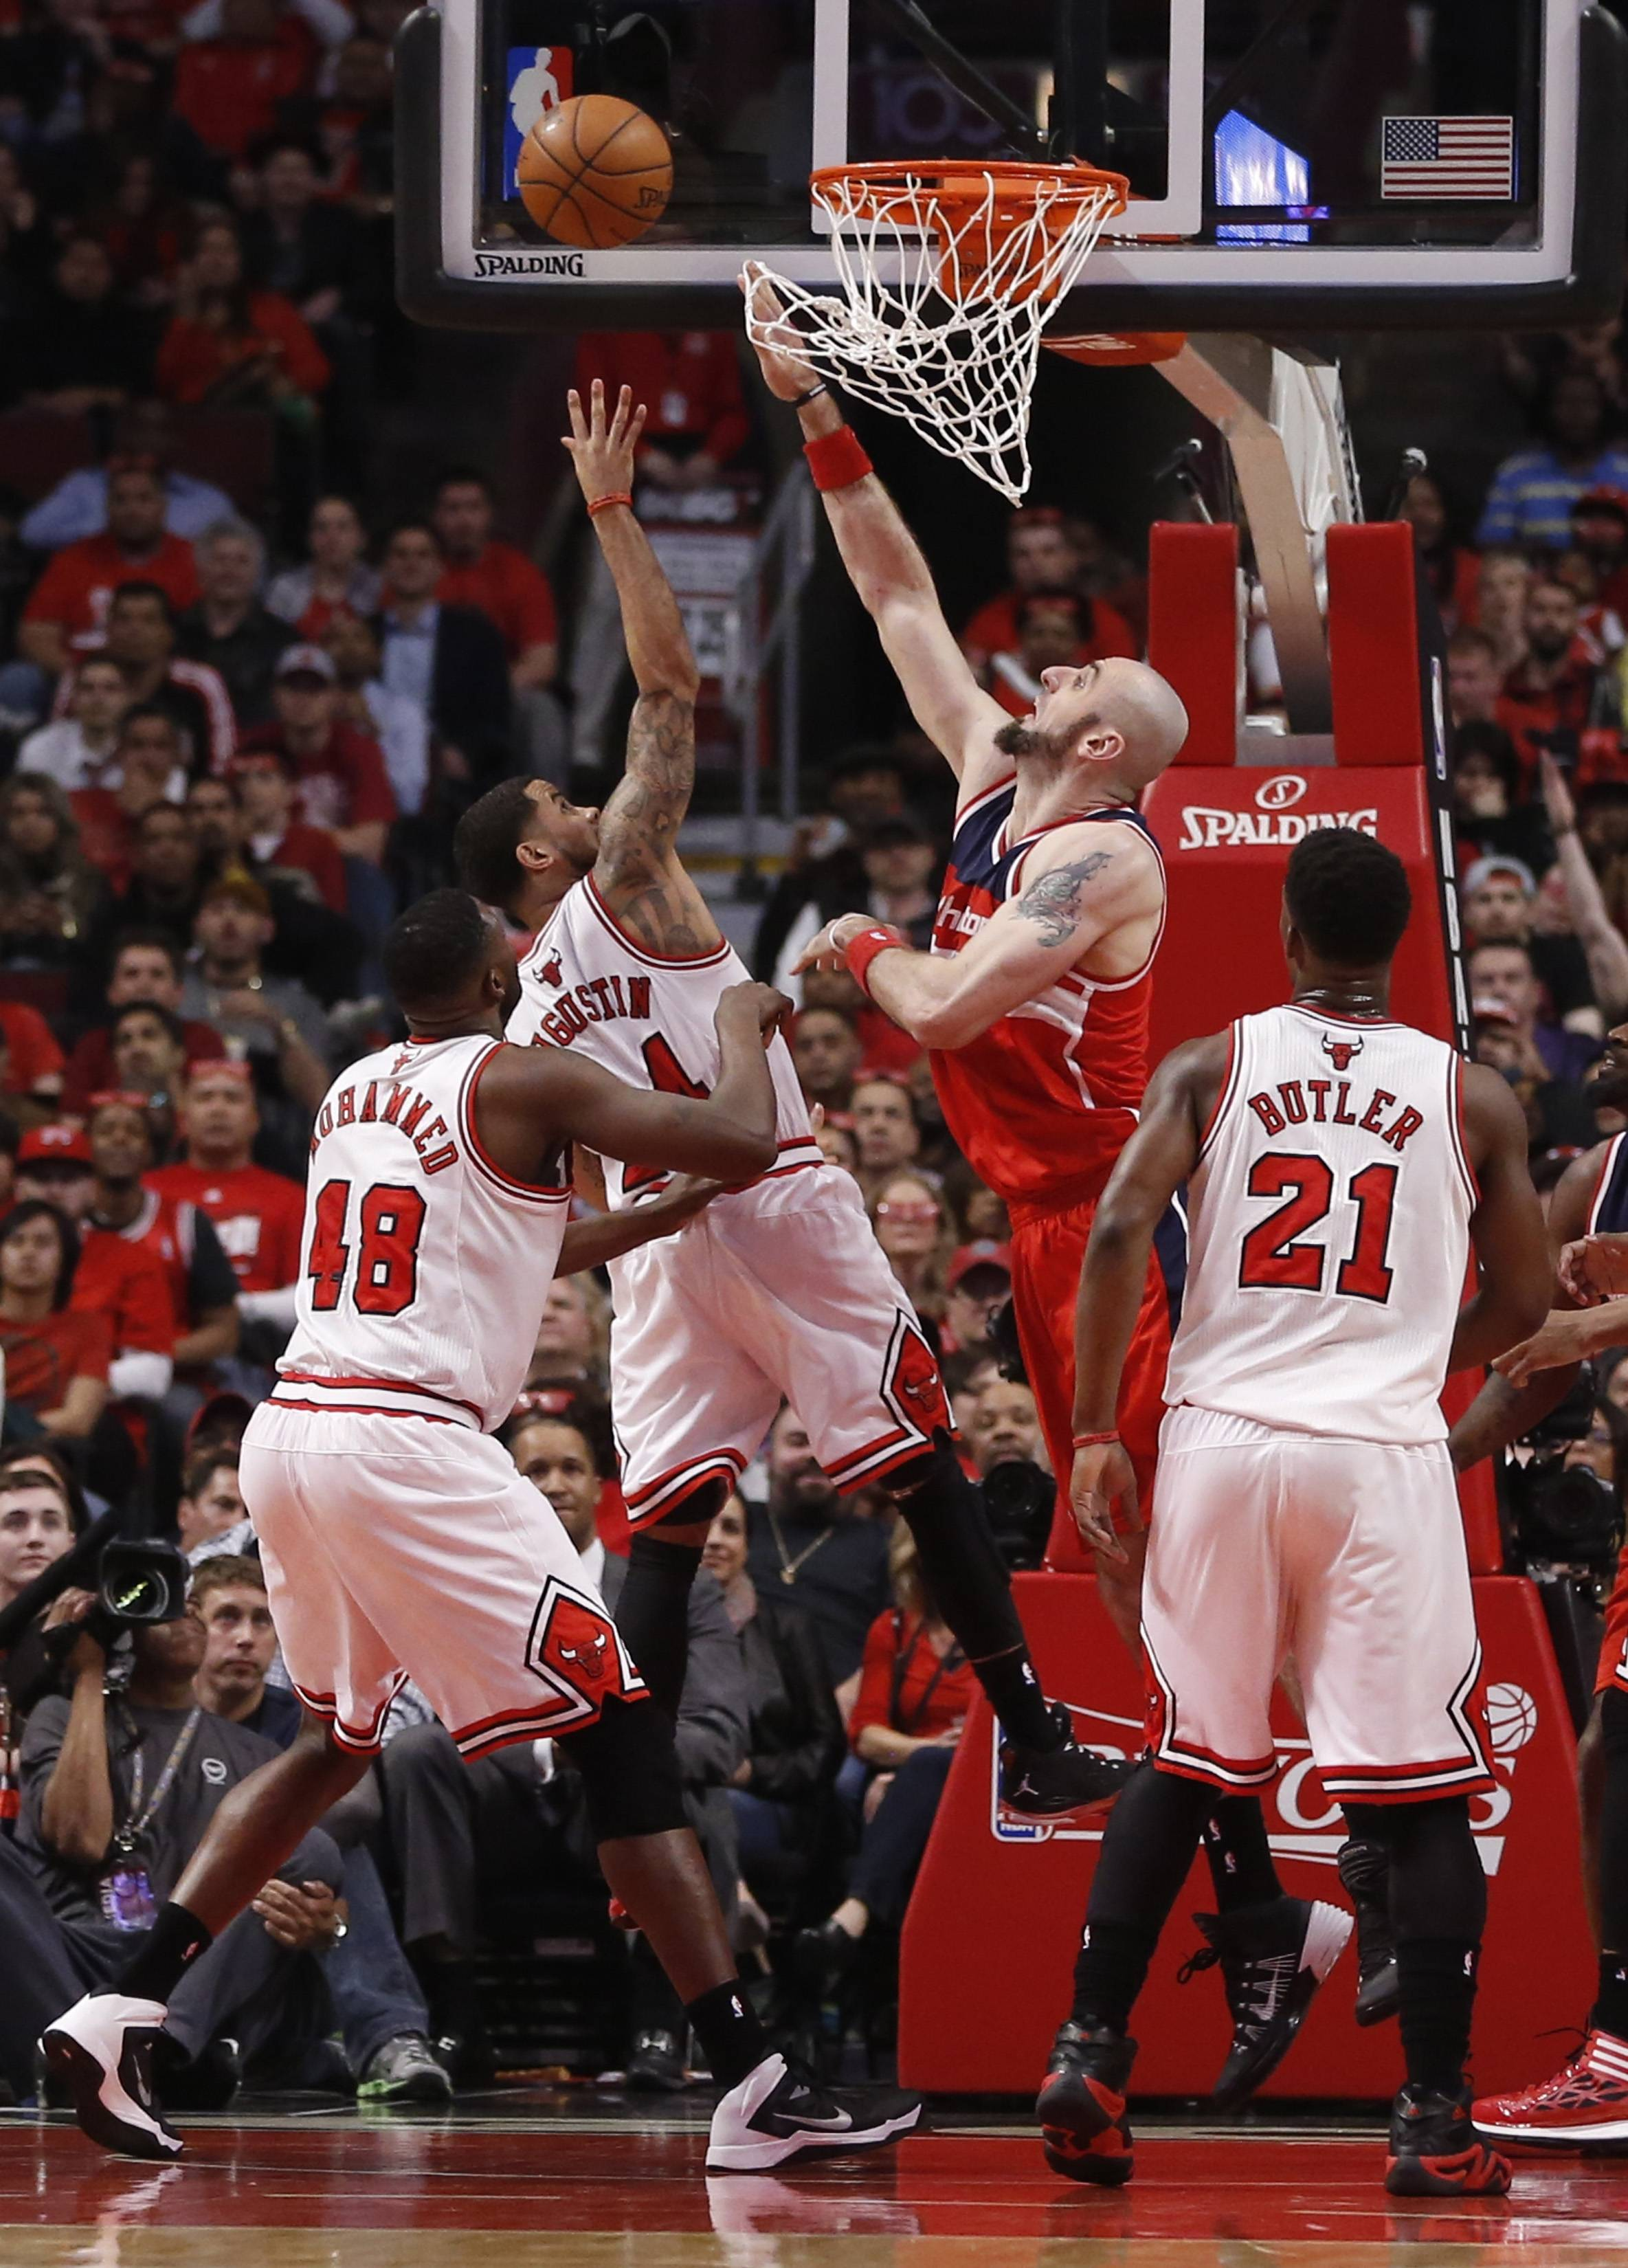 Chicago Bulls guard D.J. Augustin (14) shoots over Washington Wizards center Marcin Gortat (4) as Nazr Mohammed (48) and Jimmy Butler (21) watch during the first half of Game 2 in an opening-round NBA basketball playoff series Tuesday in Chicago.